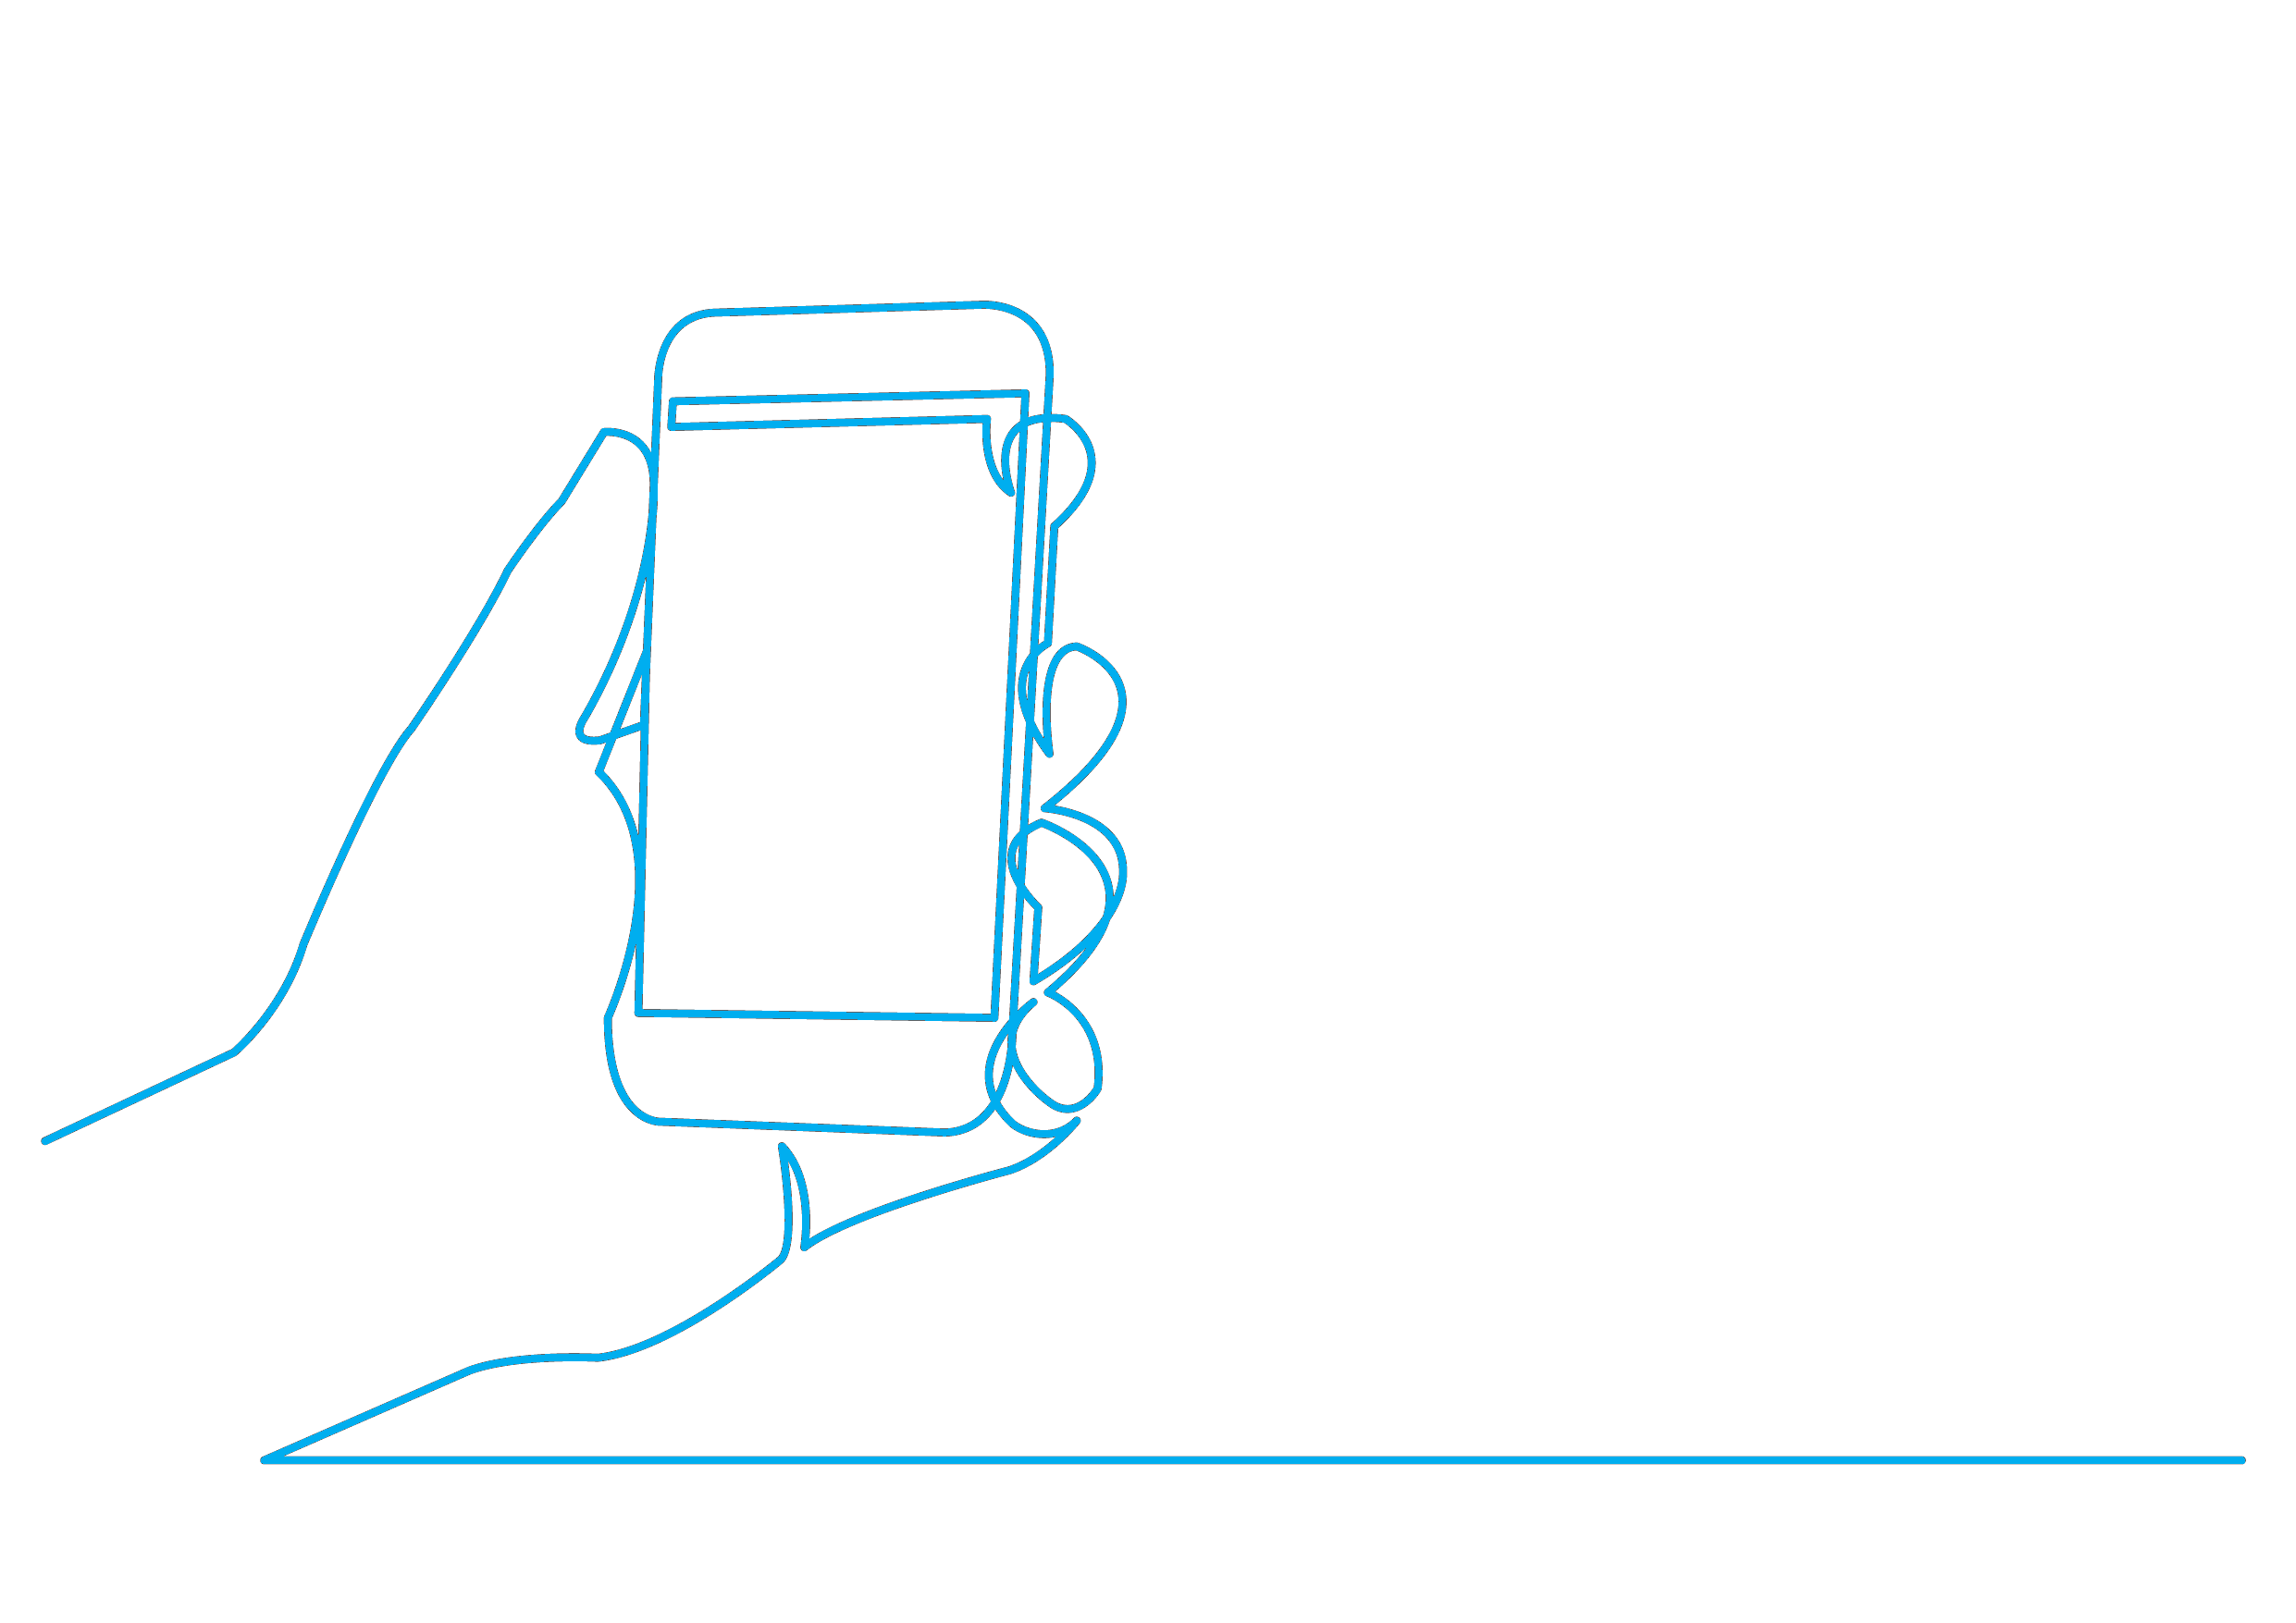 bluQube line drawing of a mobile phone